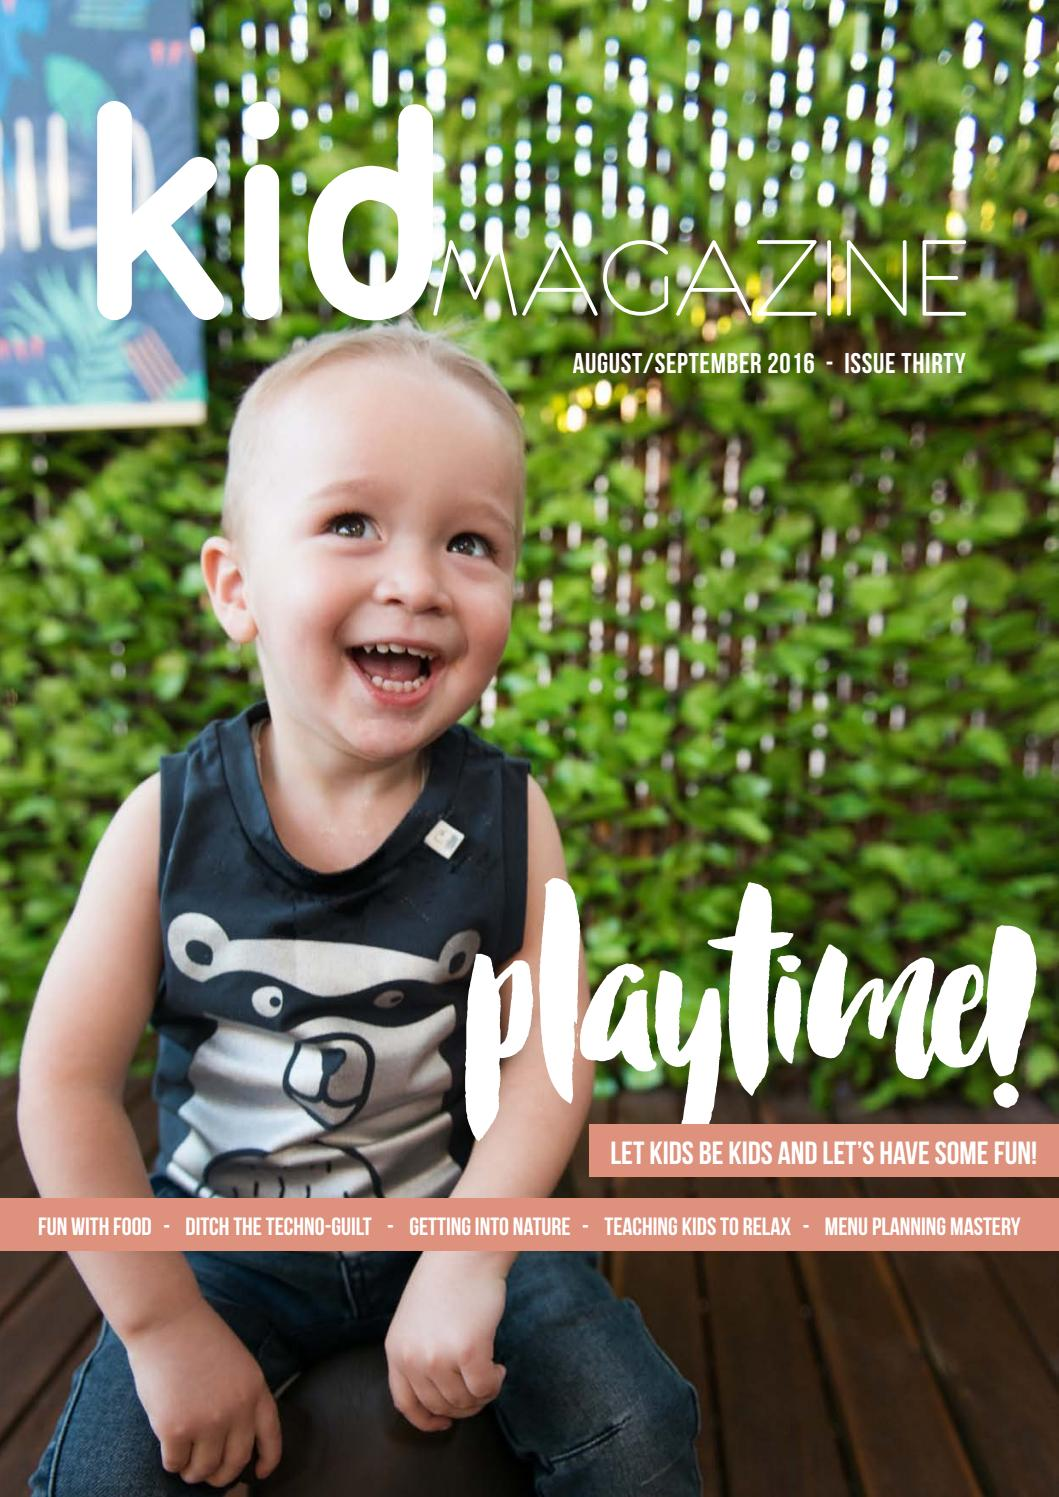 Kid Magazine Issue Thirty by Kid Magazine - issuu